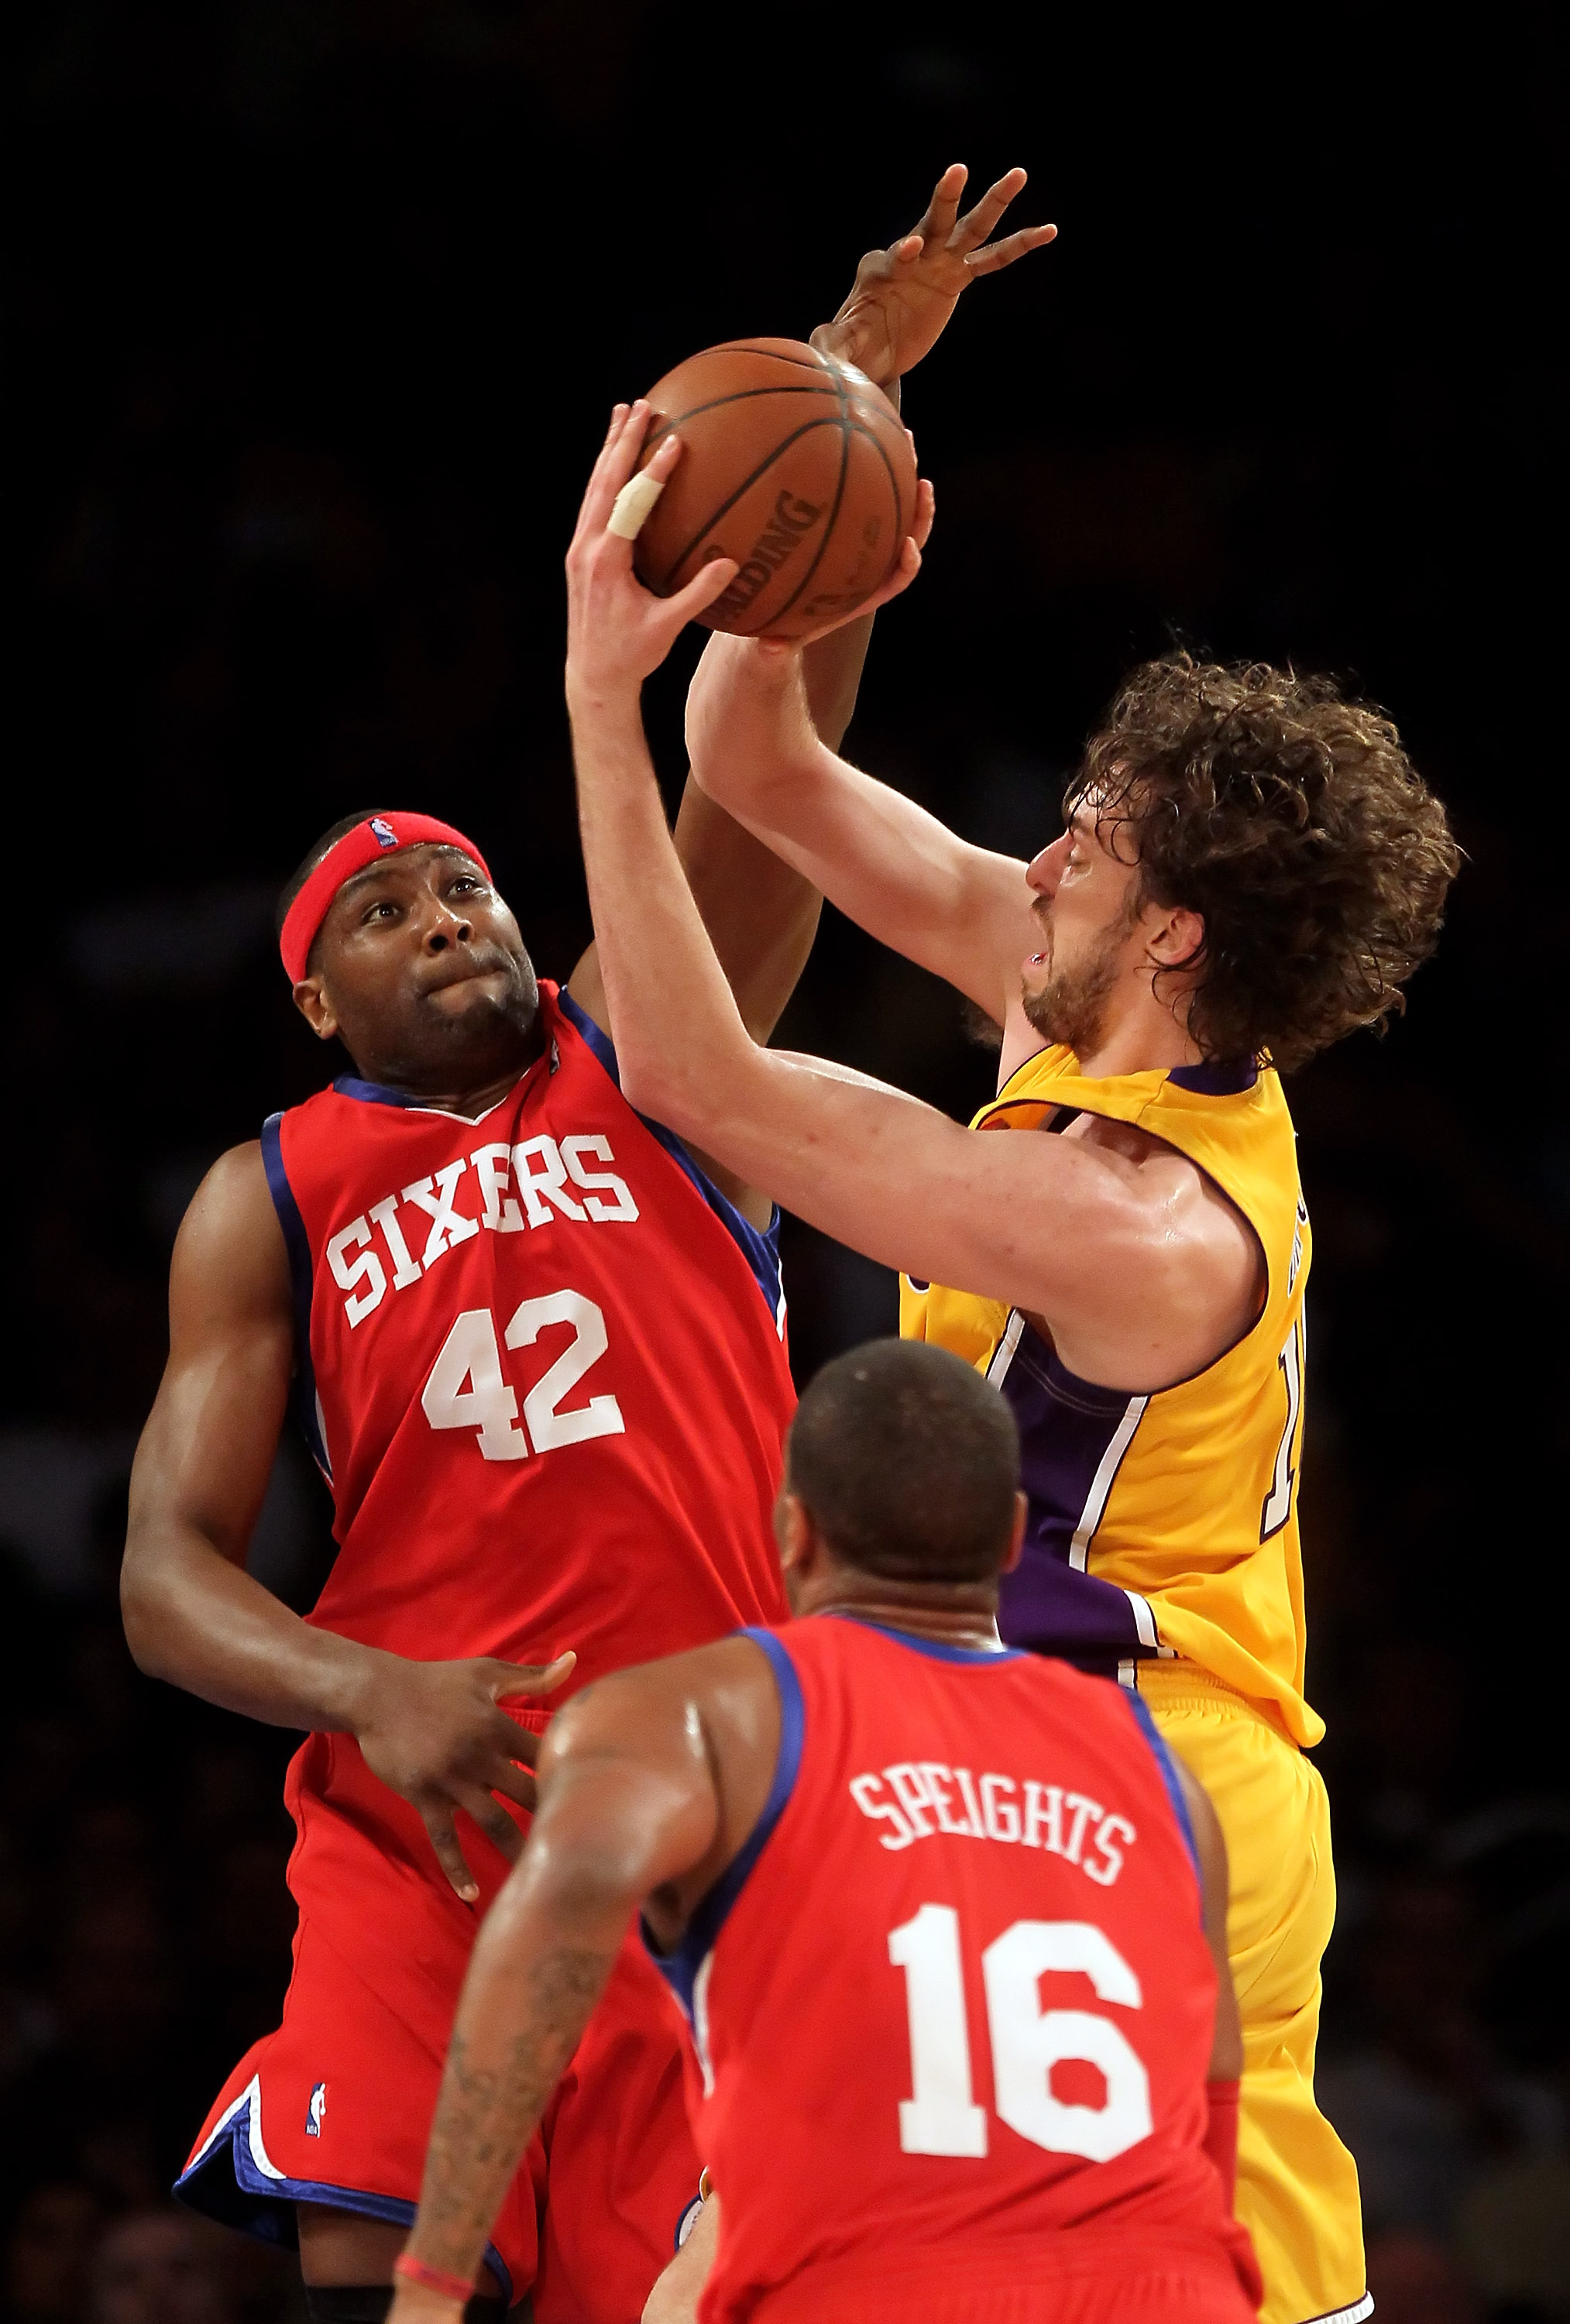 LOS ANGELES, CA - FEBRUARY 26:  Pau Gasol #16 of the Los Angeles Lakers is defended by Elton Brand #42 of the Philadelphia 76ers in the first half at Staples Center on February 26, 2010 in Los Angeles, California. NOTE TO USER: User expressly acknowledges